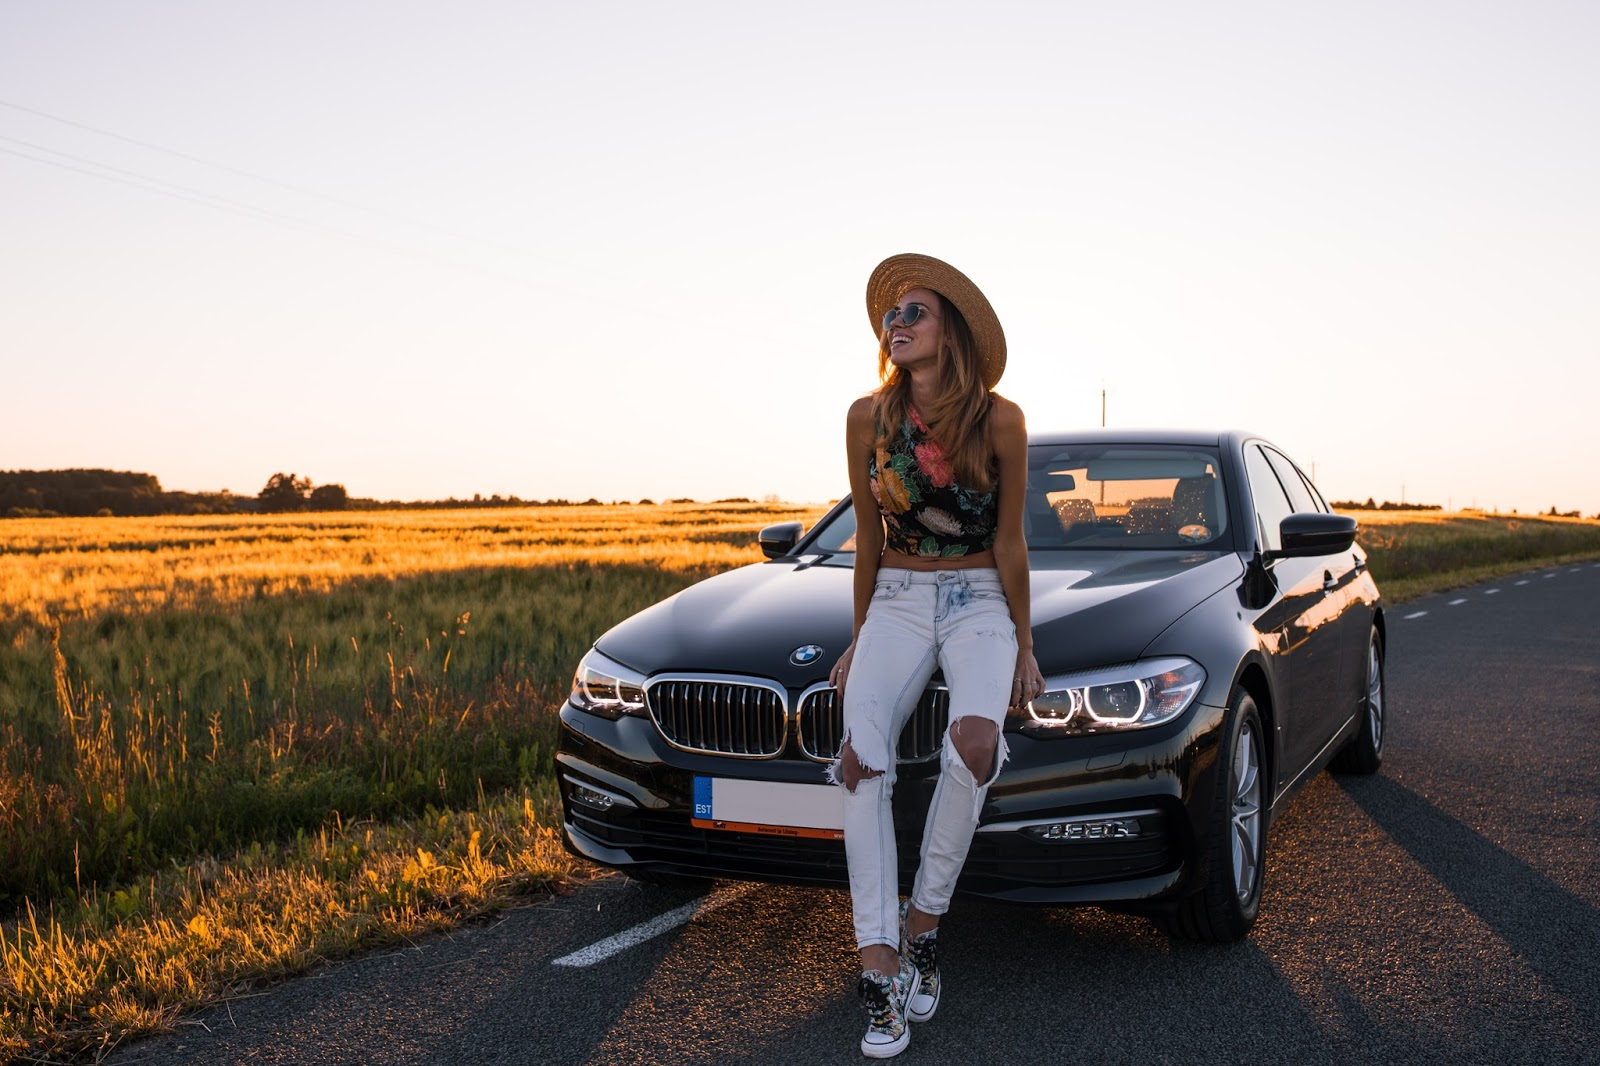 bmw 7 series nature girl sunset